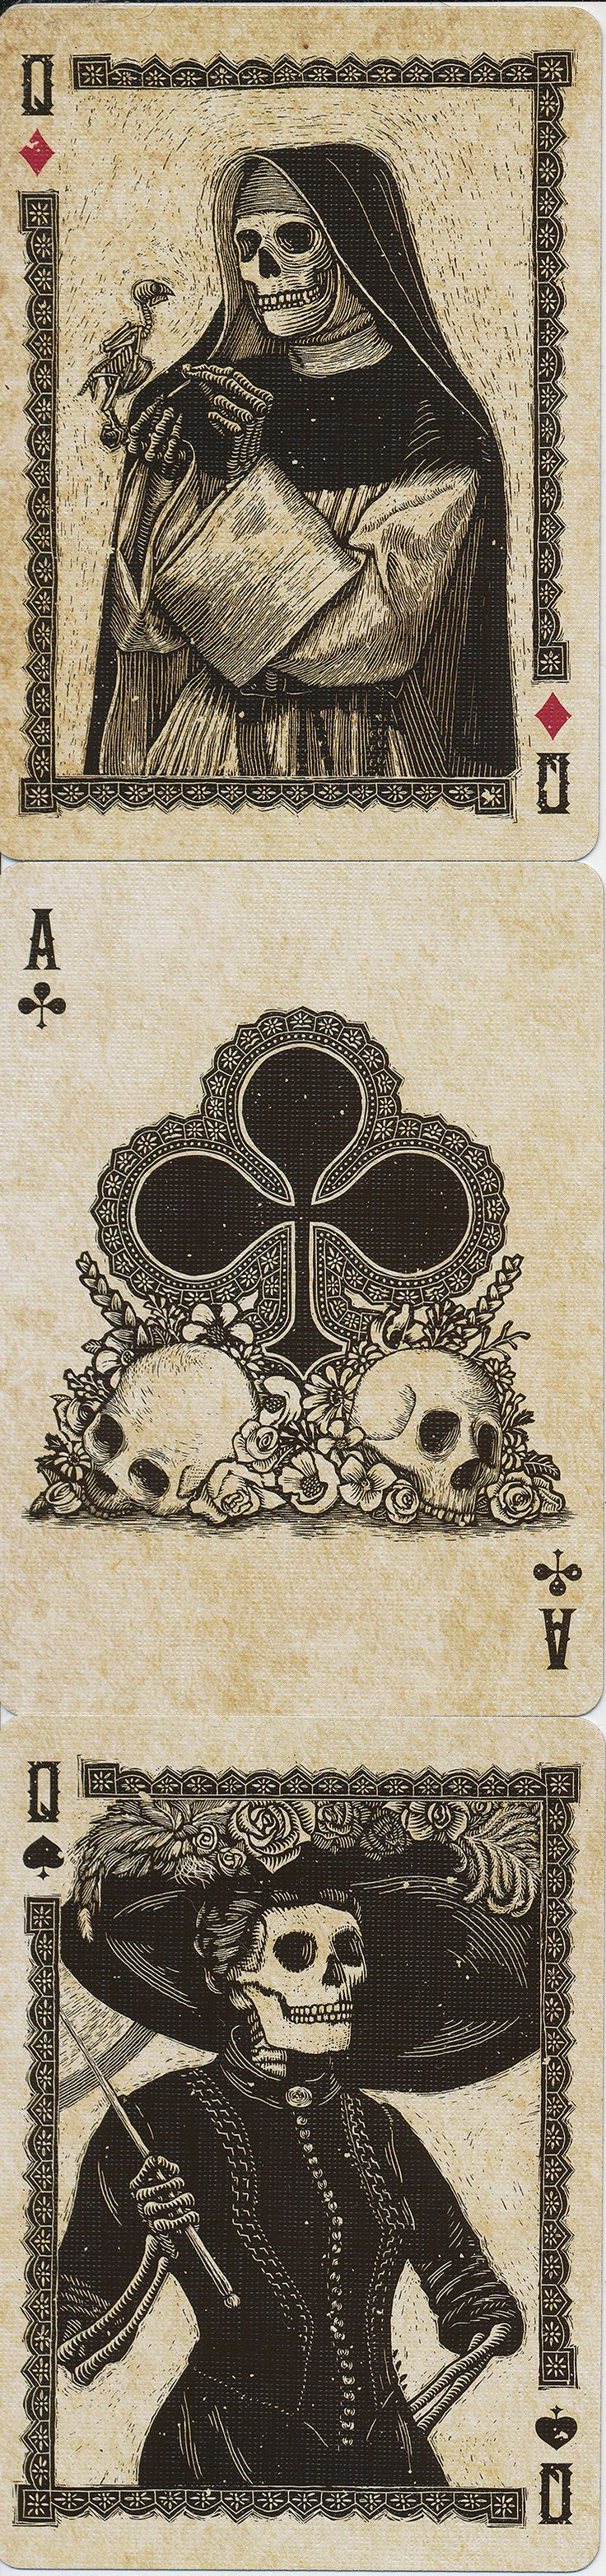 Q♦ A♣ Q♠ Calaveras Playing Cards.